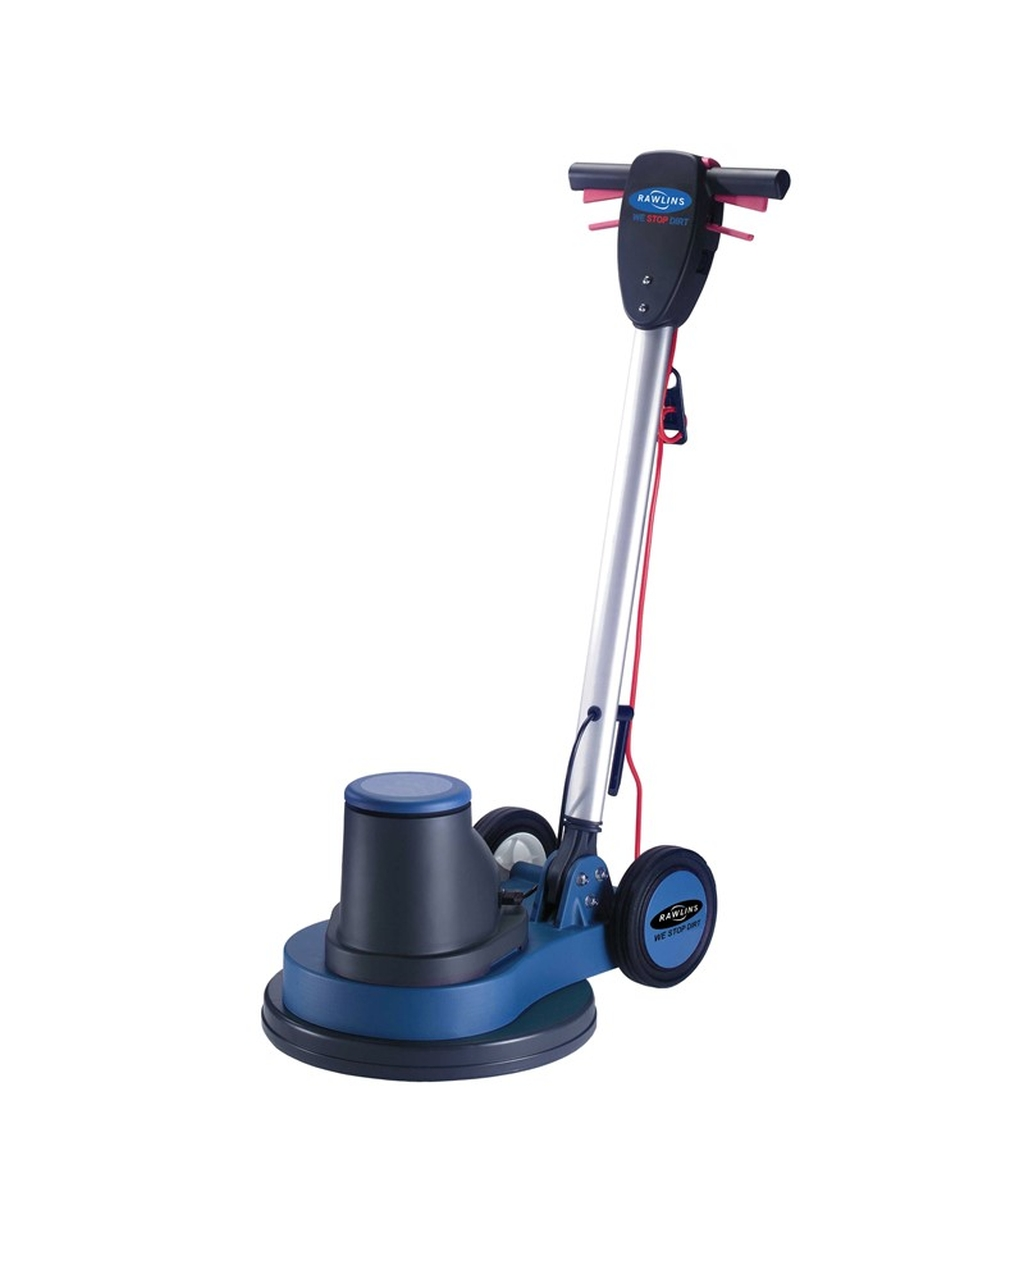 400rpm High Speed Floor Polisher (17 inch)